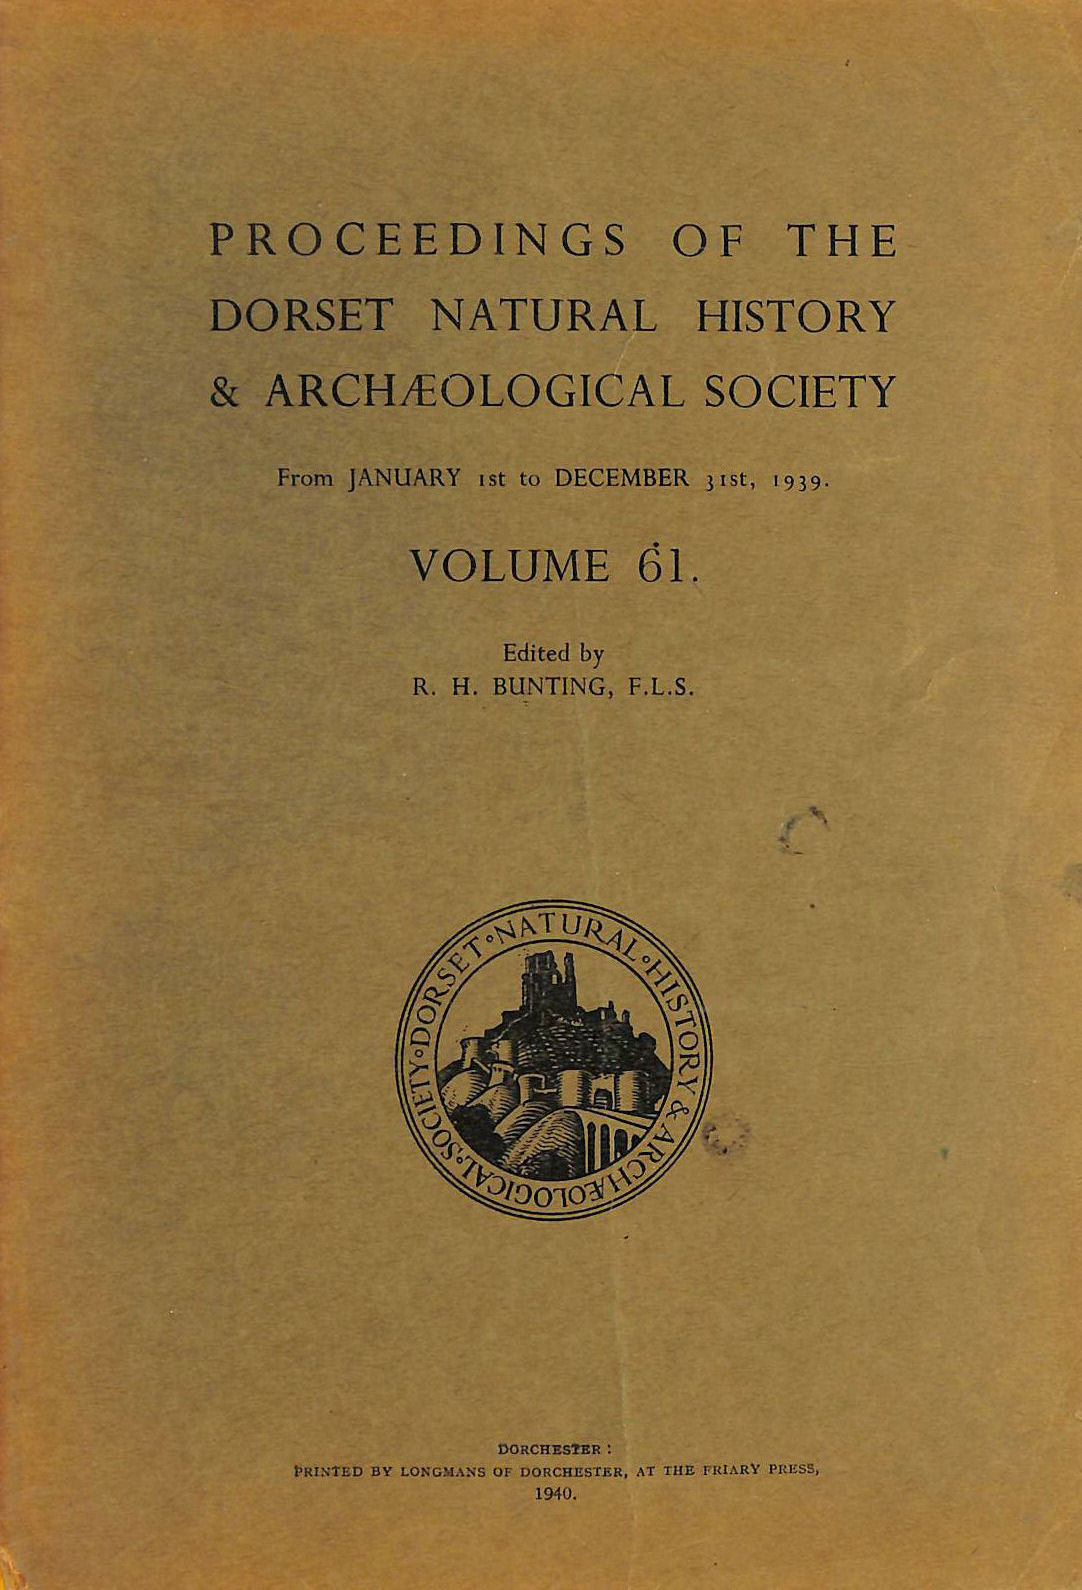 Image for PROCEEDINGS OF THE DORSET NATURAL HISTORY and ARCHAEOLOGICAL SOCIETY. VOLUME 61. 1 JANUARY - 31 DECEMBER 1939